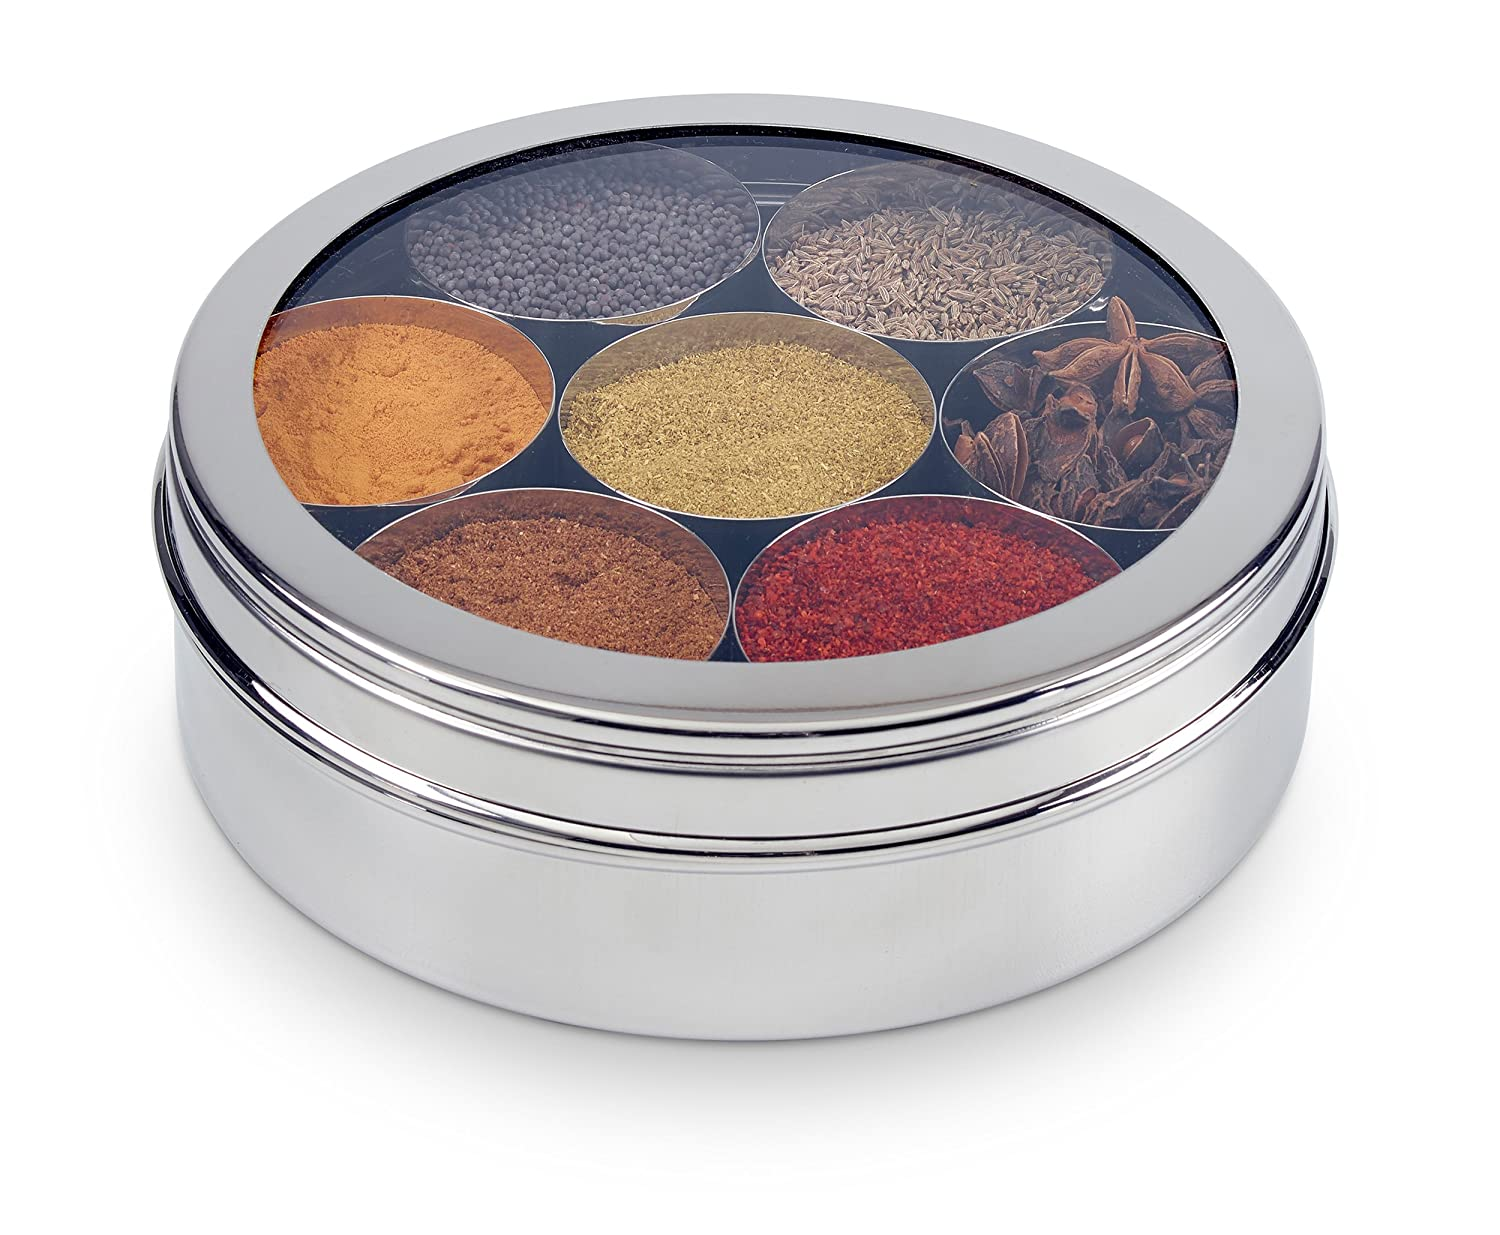 22cm Silver Zinel Stainless Steel Spice Box//Masala Dabba with 7 Comparments and Transparent Lid Size 5-22 Centimeters